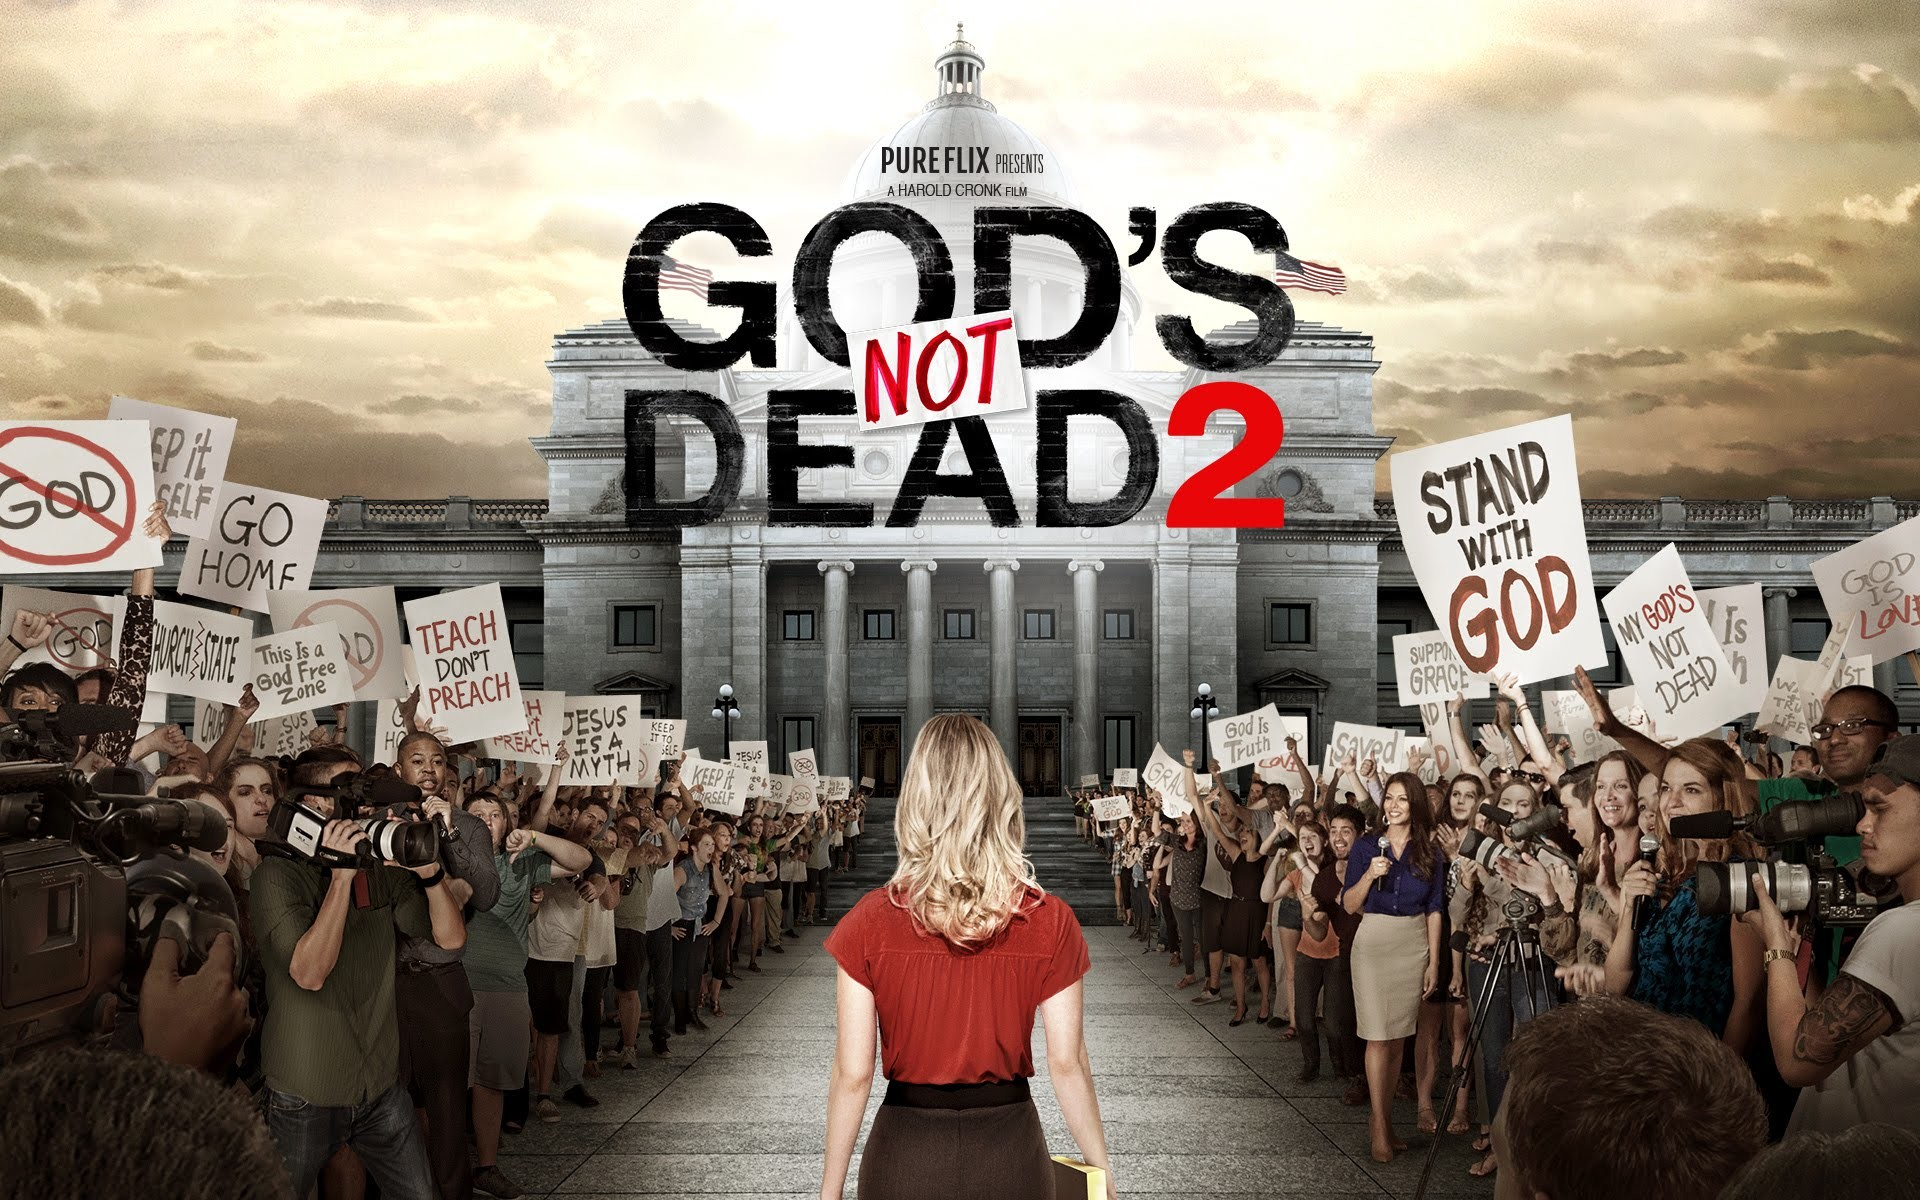 1920x1200 God's Not Dead 2 | Trailer | Now Playing | godsnotdeadthemovie.com - YouTube